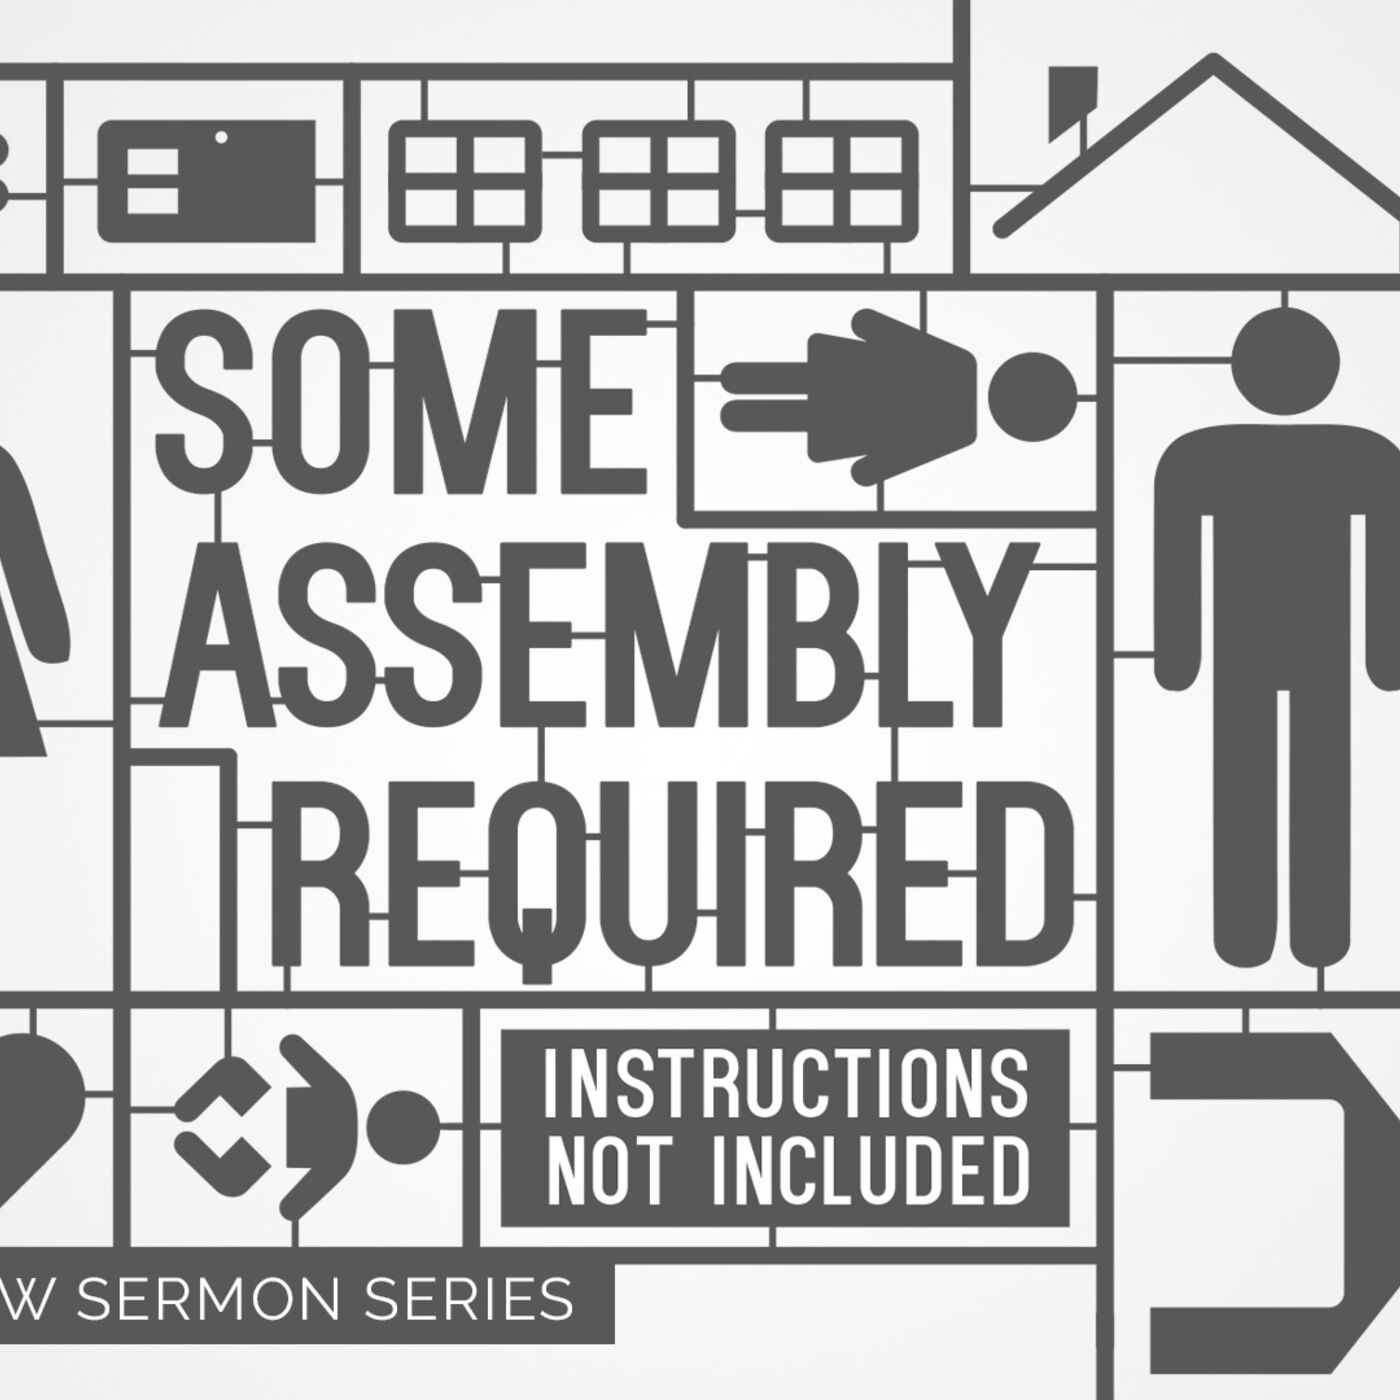 Some Assembly Required Week 1